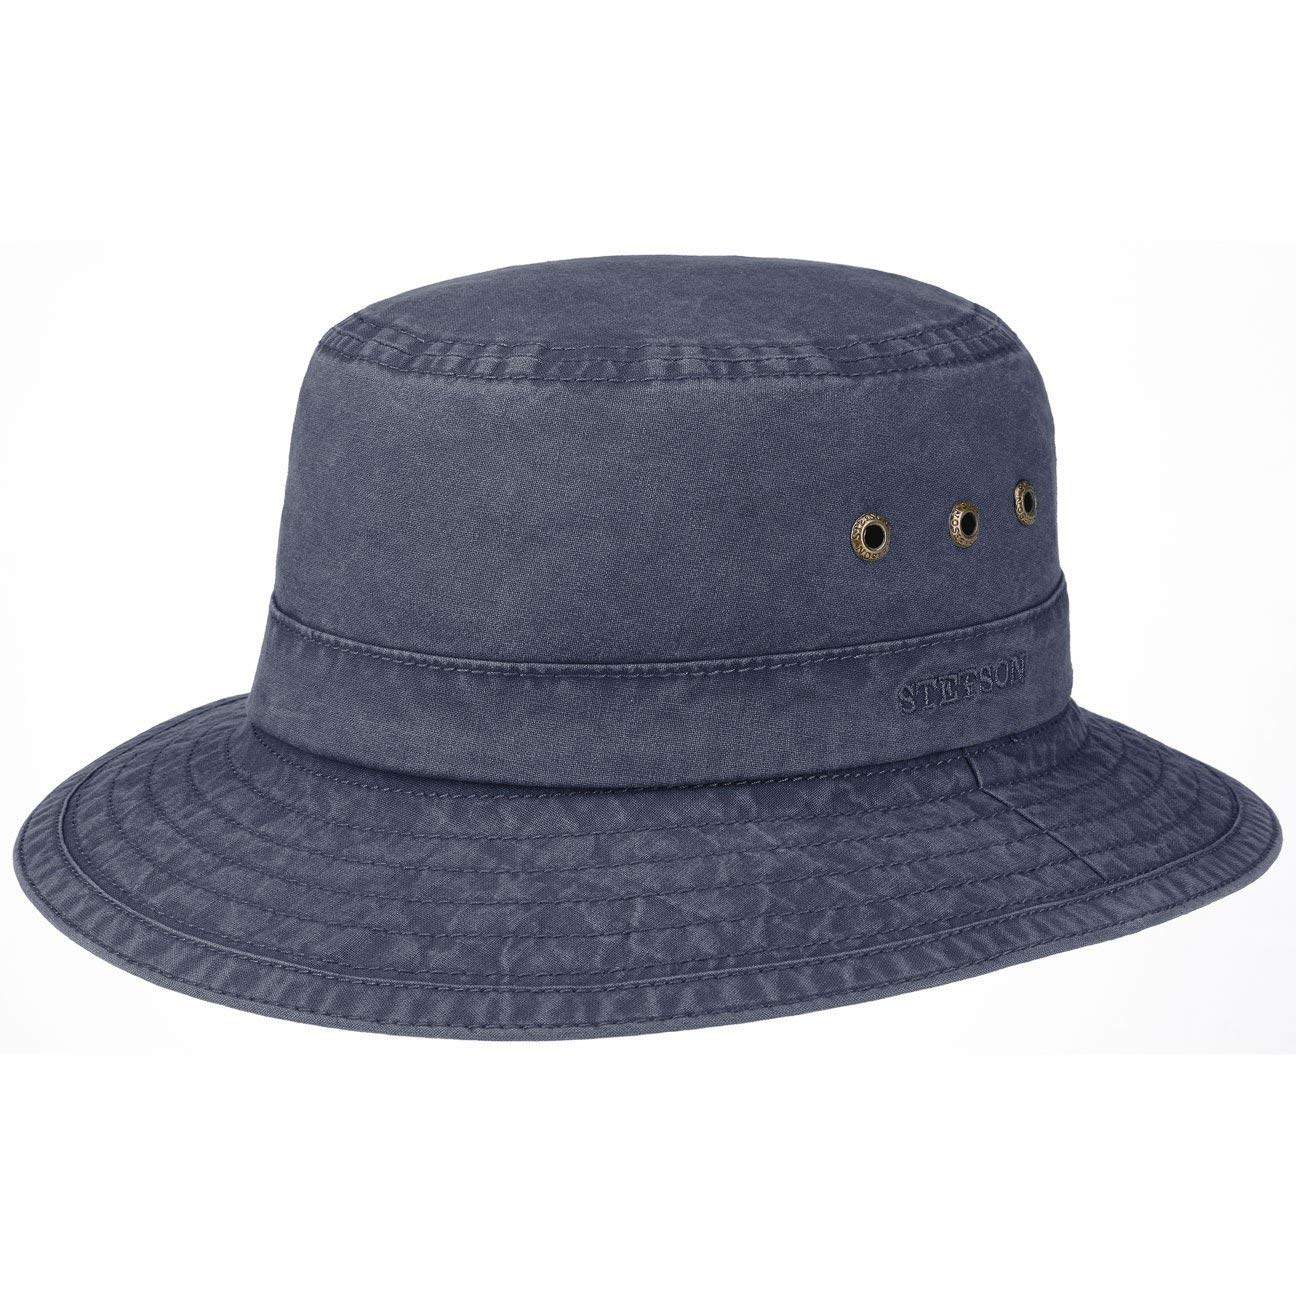 8c8639a488d15d Stetson Reston Bucket Hat Women/Men | Fisher´s Holiday Summer  Spring-Summer: Amazon.co.uk: Clothing